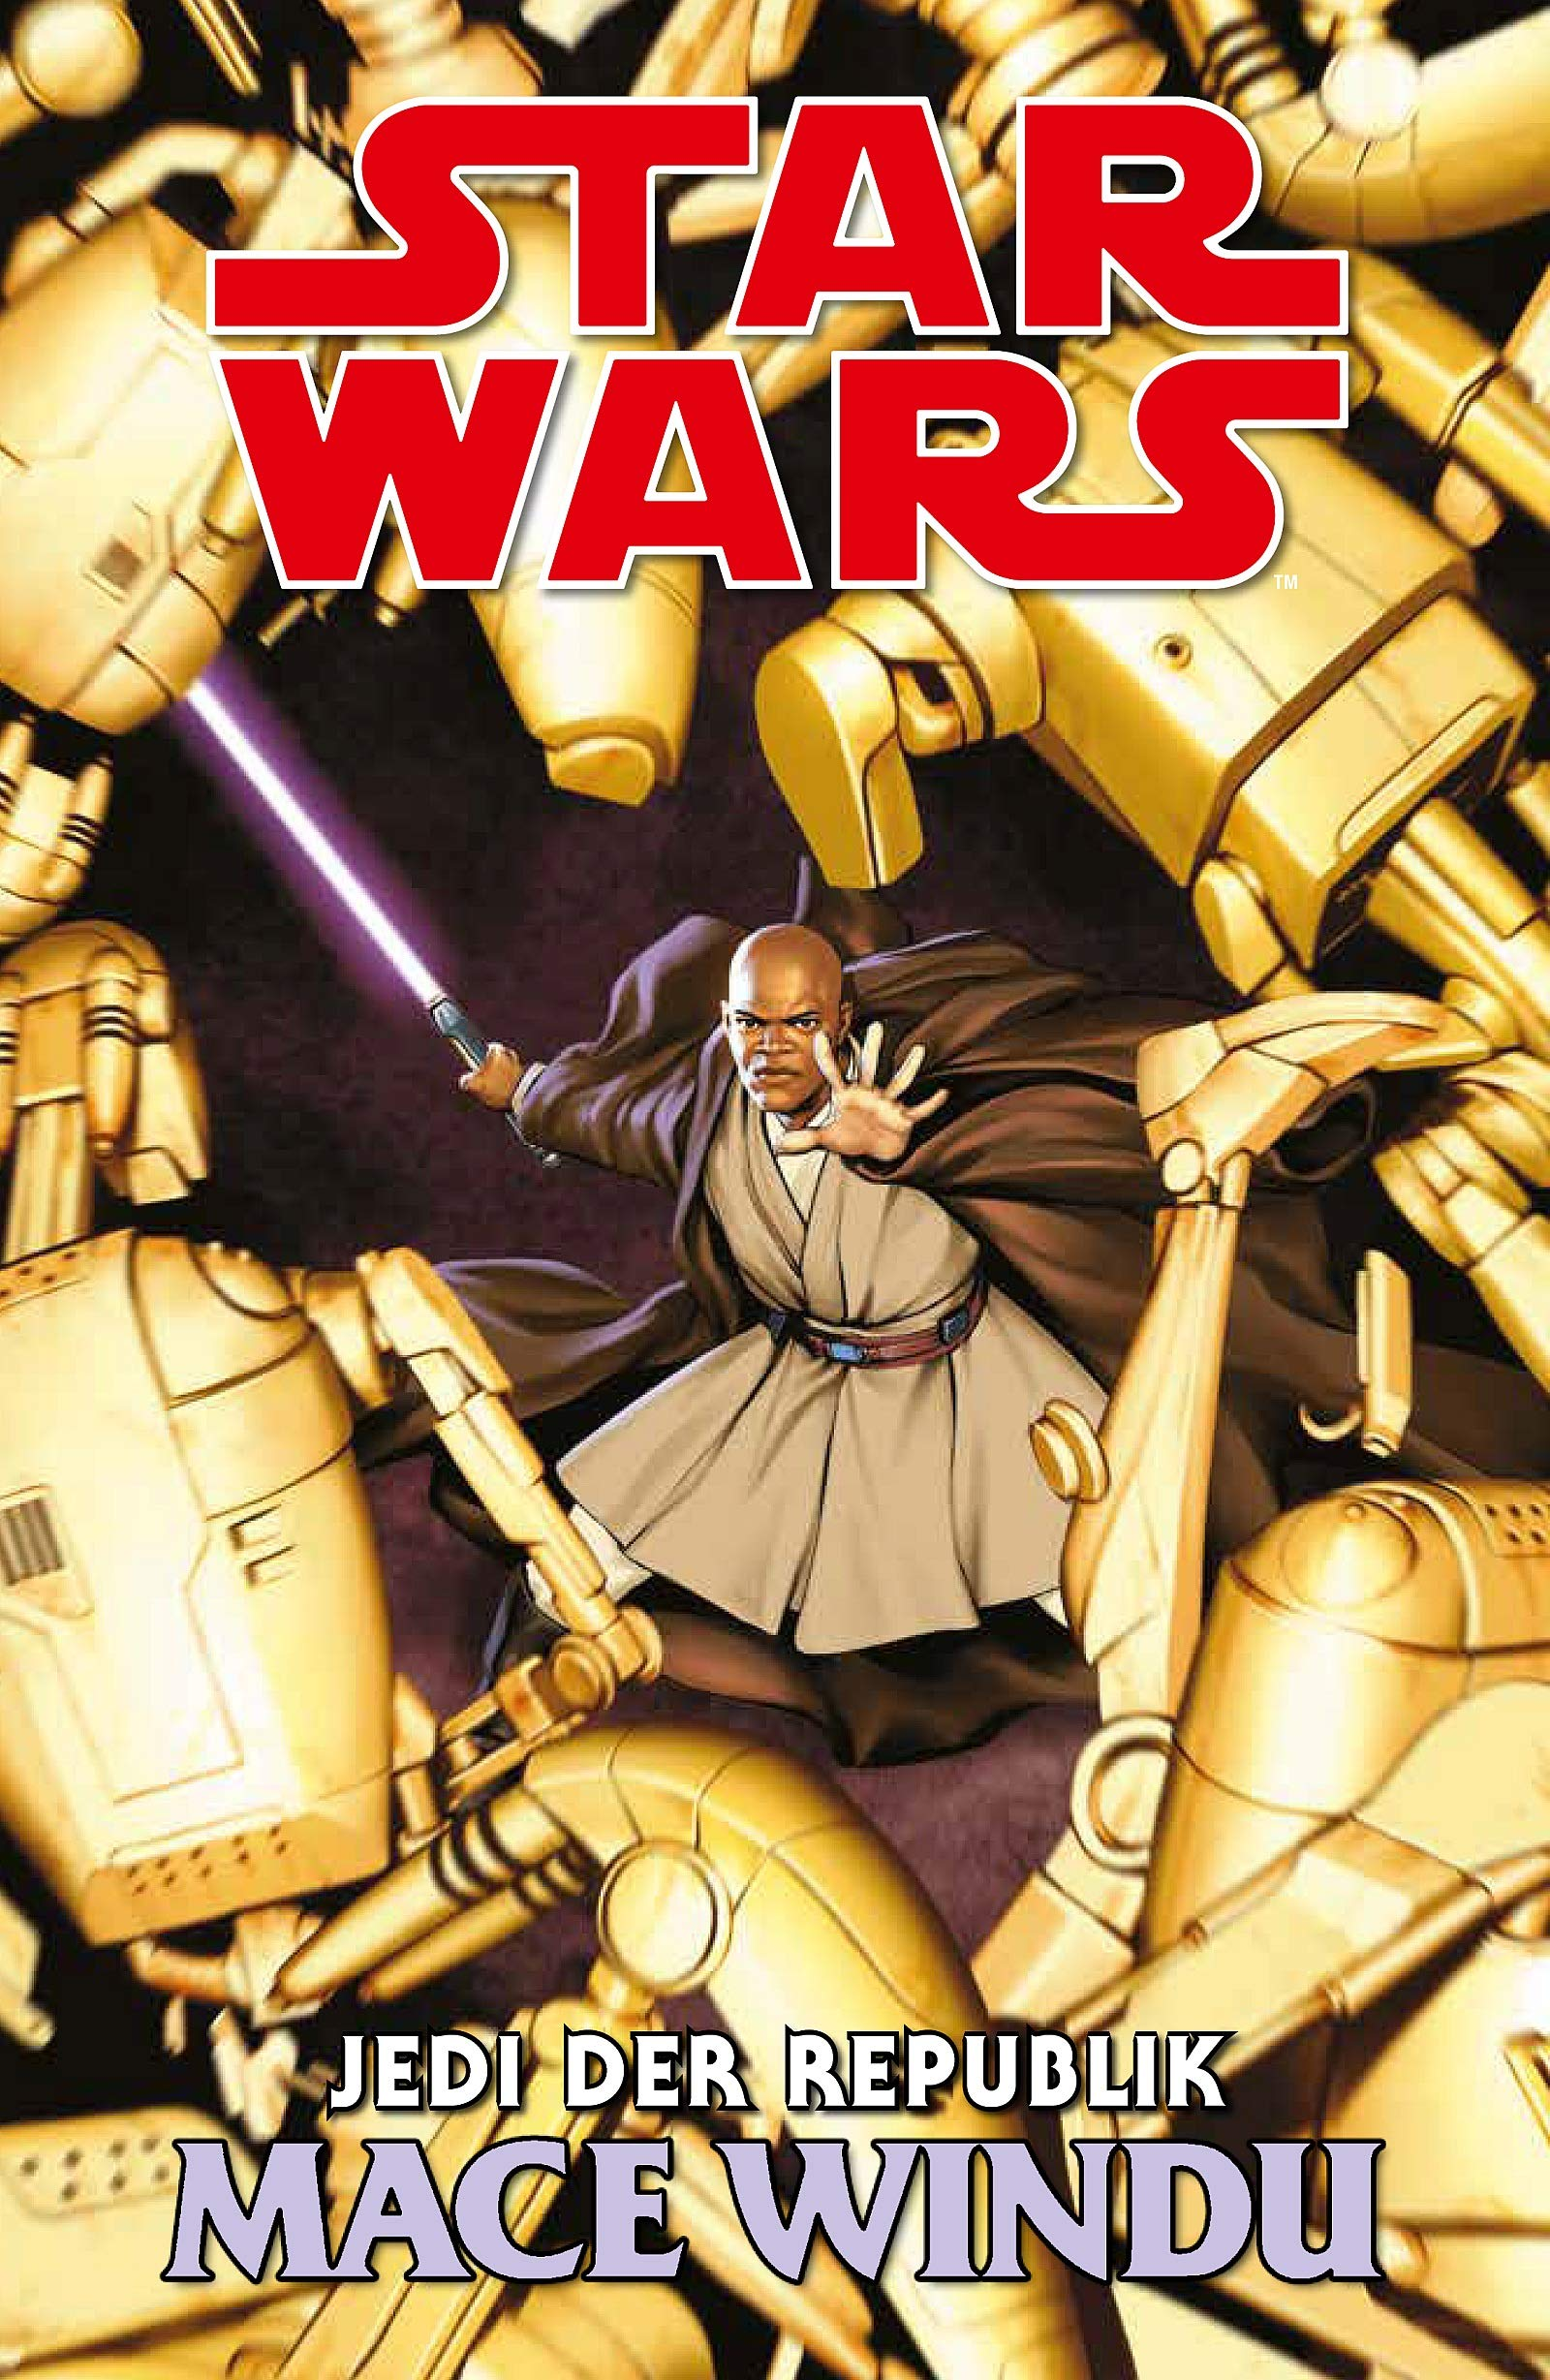 Star Wars Comics Jedi Der Republik Mace Windu Amazonde Matt